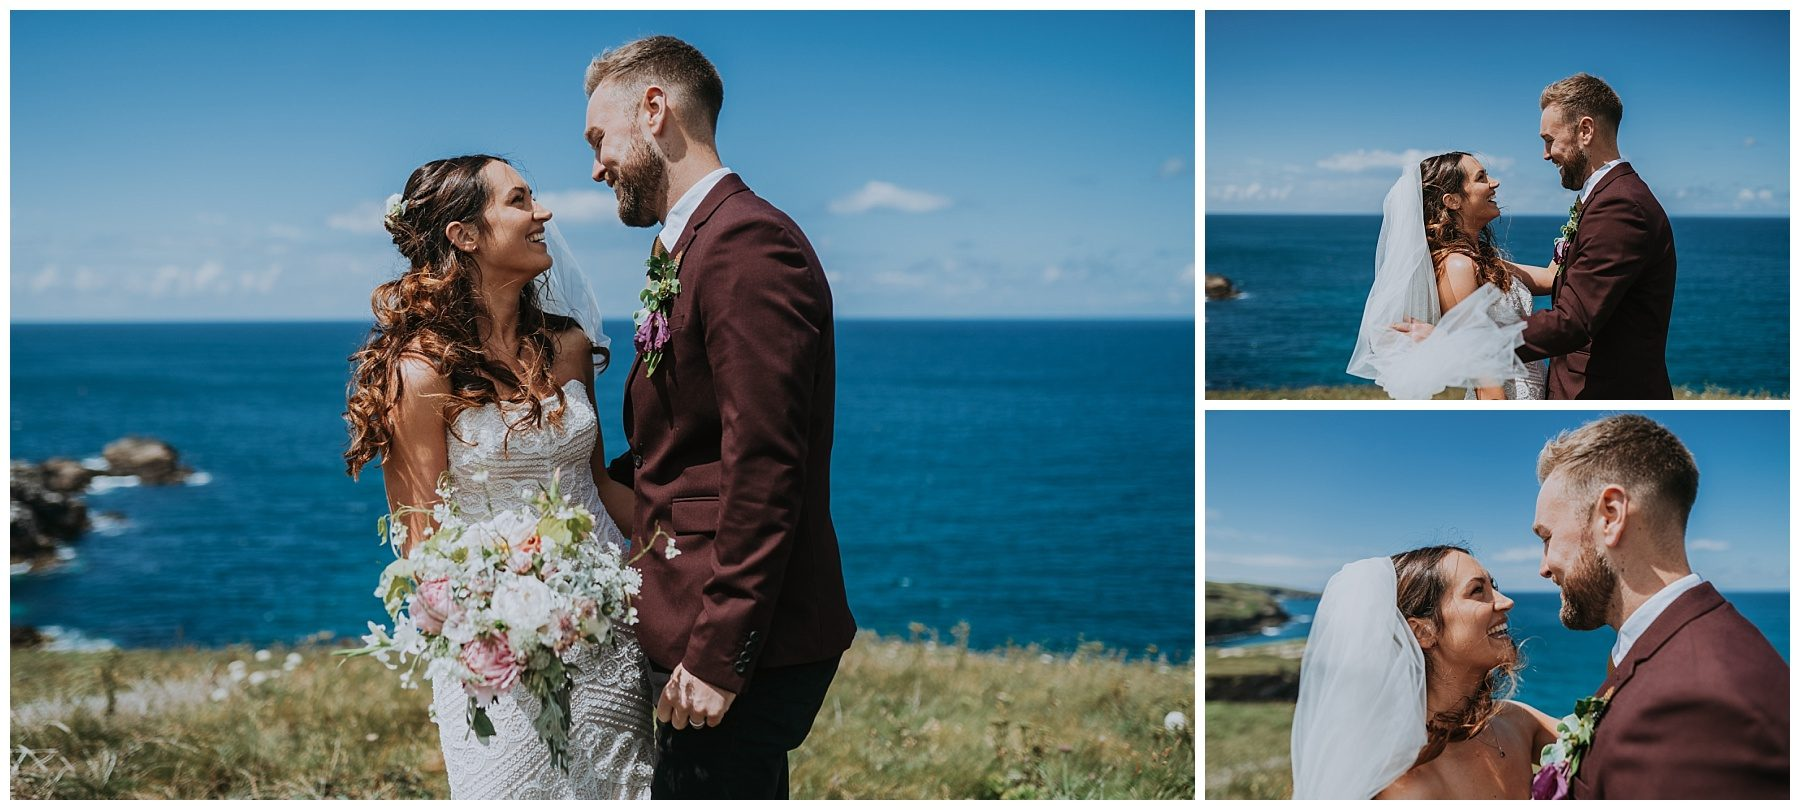 Bride and Groom wedding photography Cornwall on cliffs